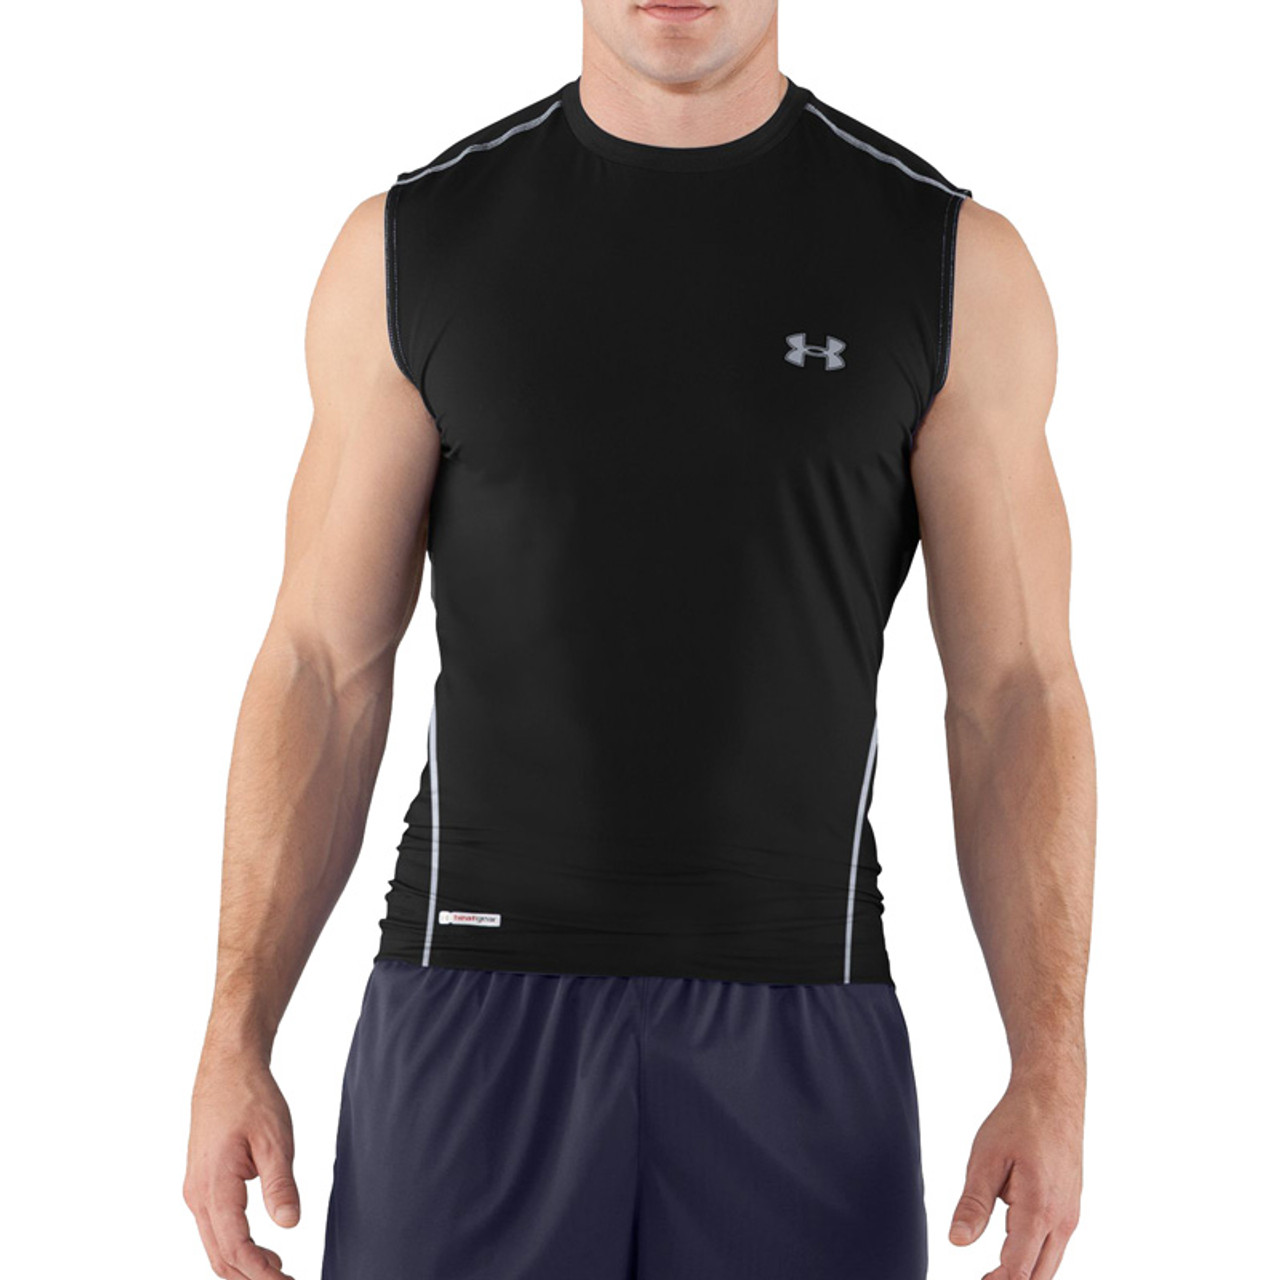 eaff9000 Under Armour Men's ® Sonic Fitted Sleeveless Tank Top